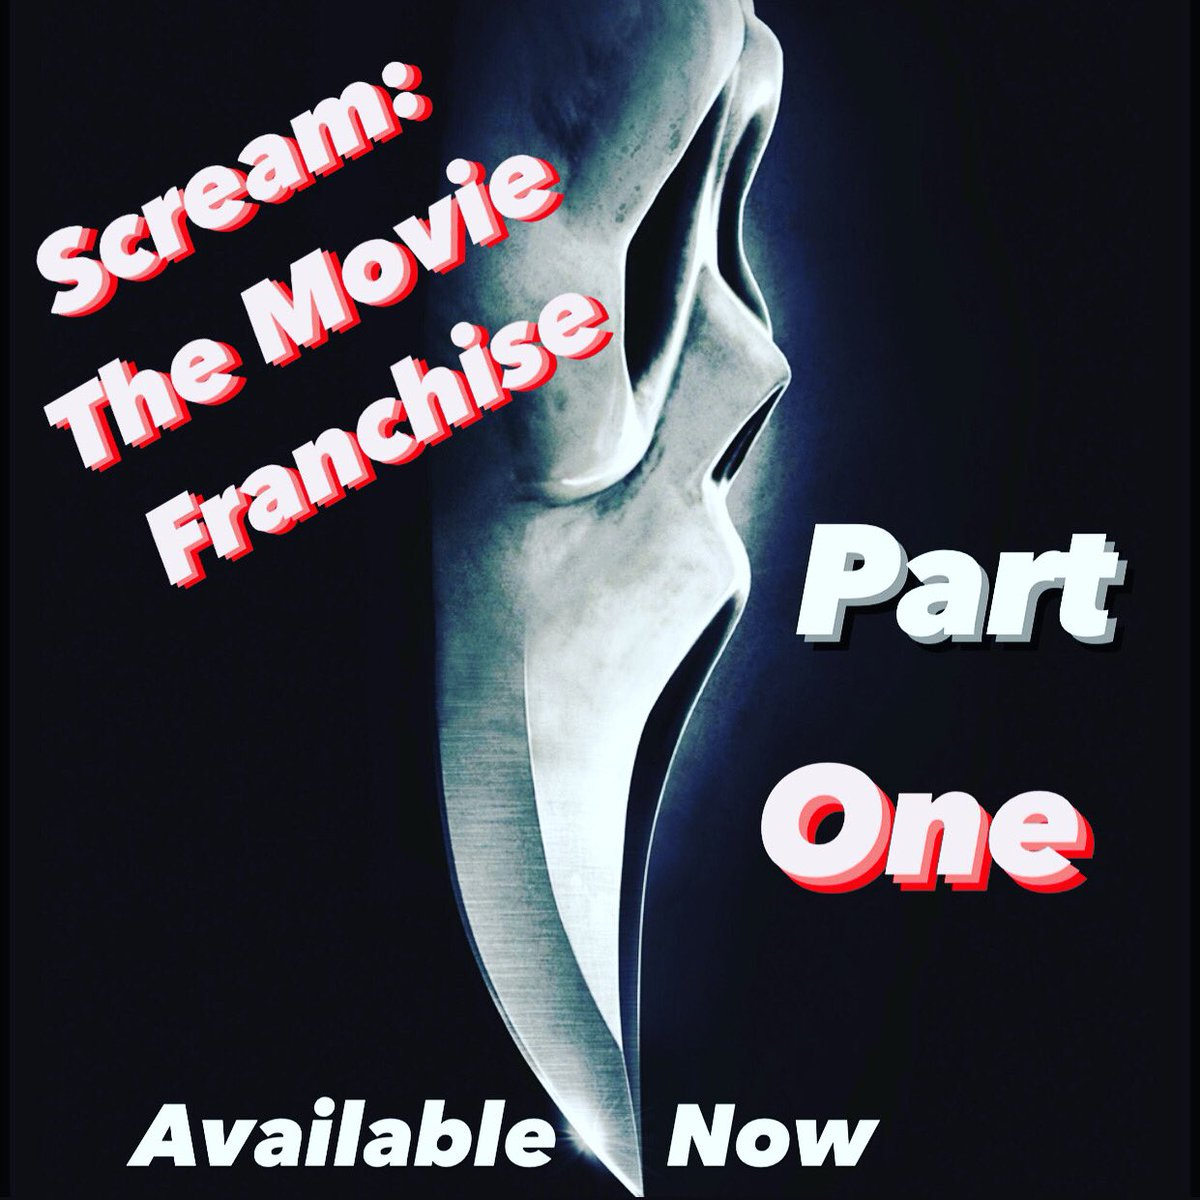 Enjoy our little dive into Scream and Scream 2!! Available to download now!! ⁃ #podcasts #moviepodcast #podcast #moviereviews #filmpodcast #podcastrecommendations #Scream https://t.co/DN49XUZrFm